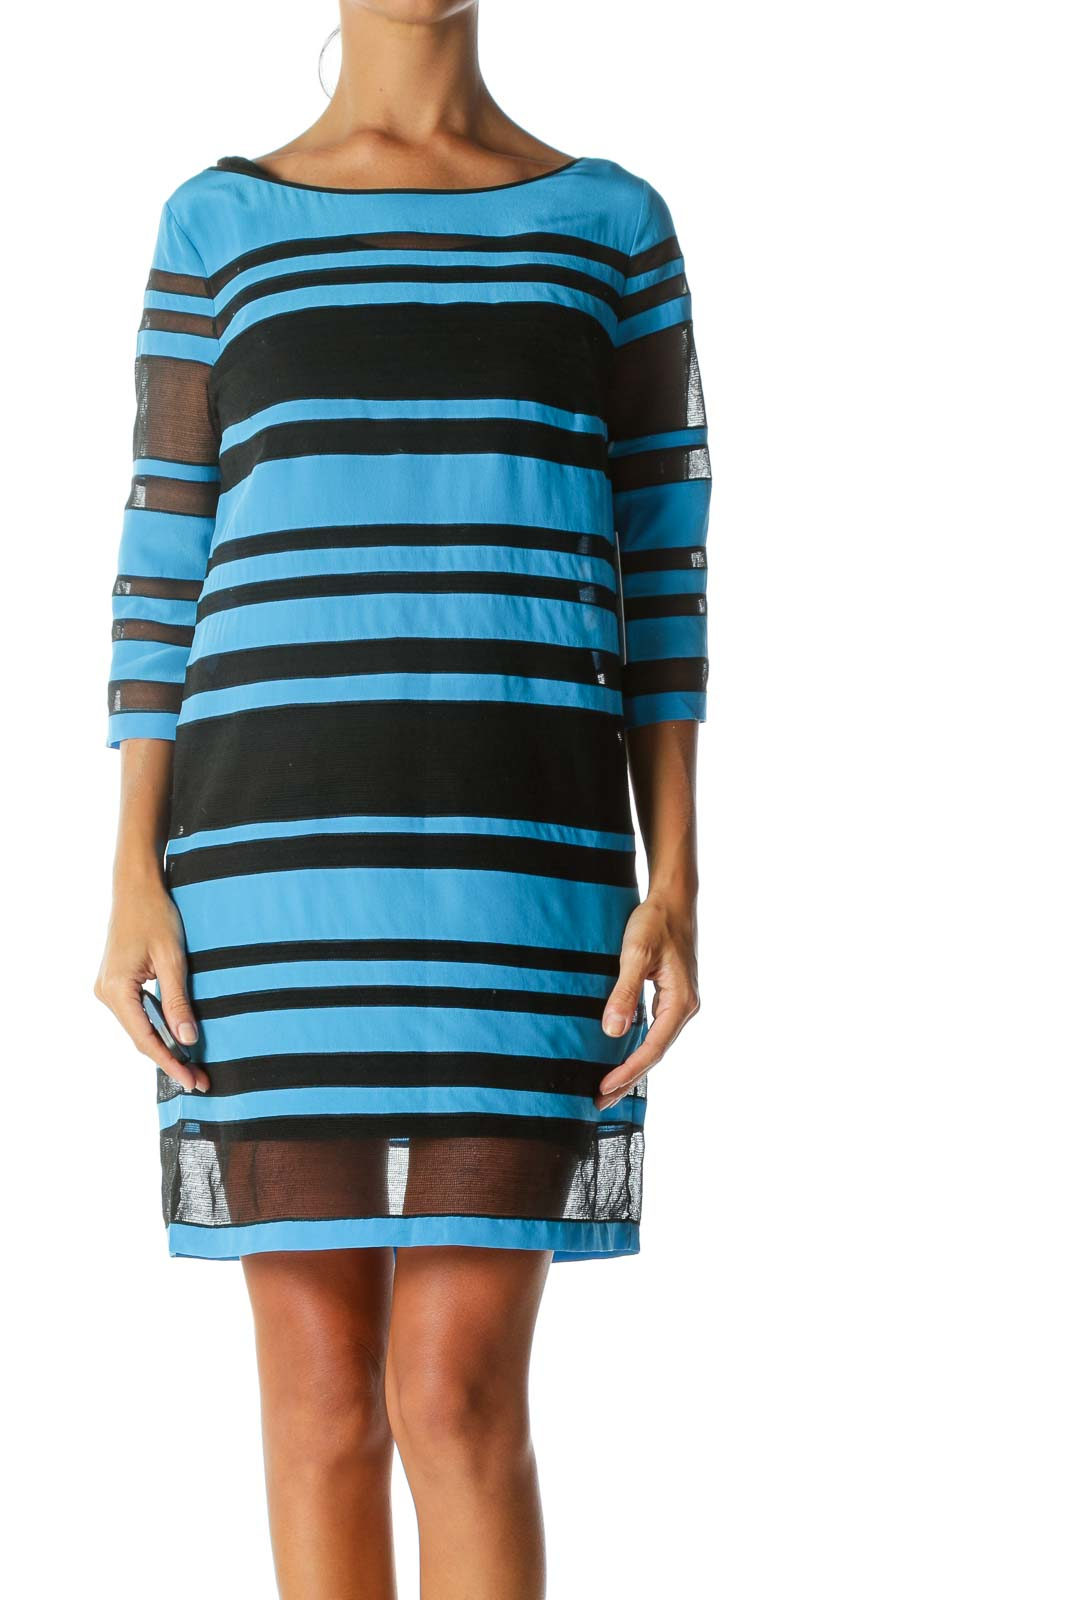 Blue & Black Mesh-Detail Designer Short-Sleeve Dress Front